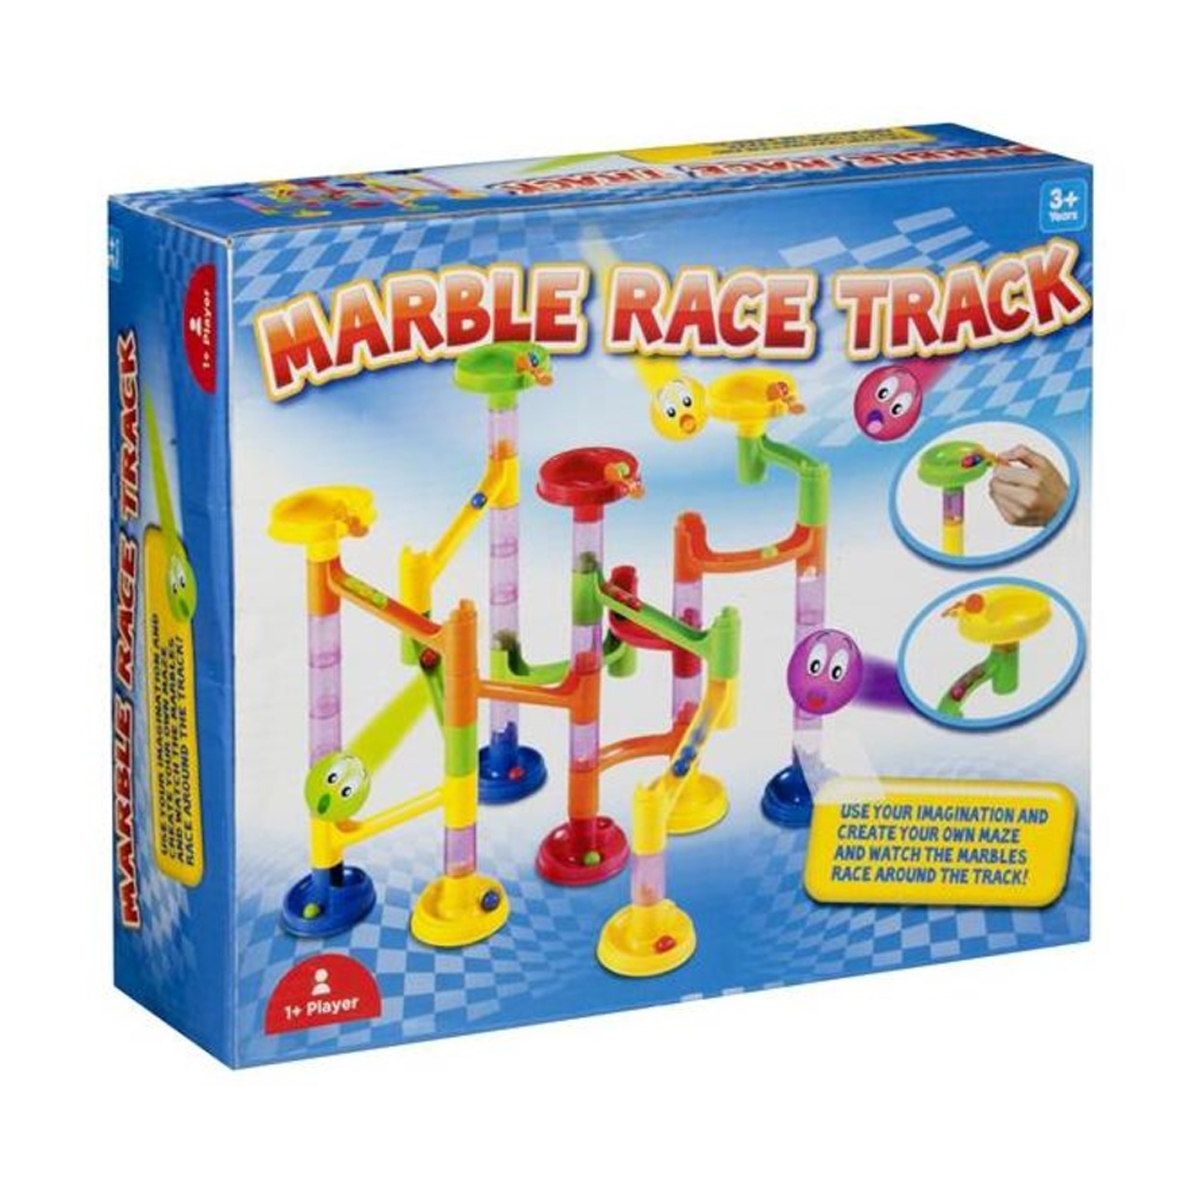 Marble Race Track Marble race, Race track, Racing